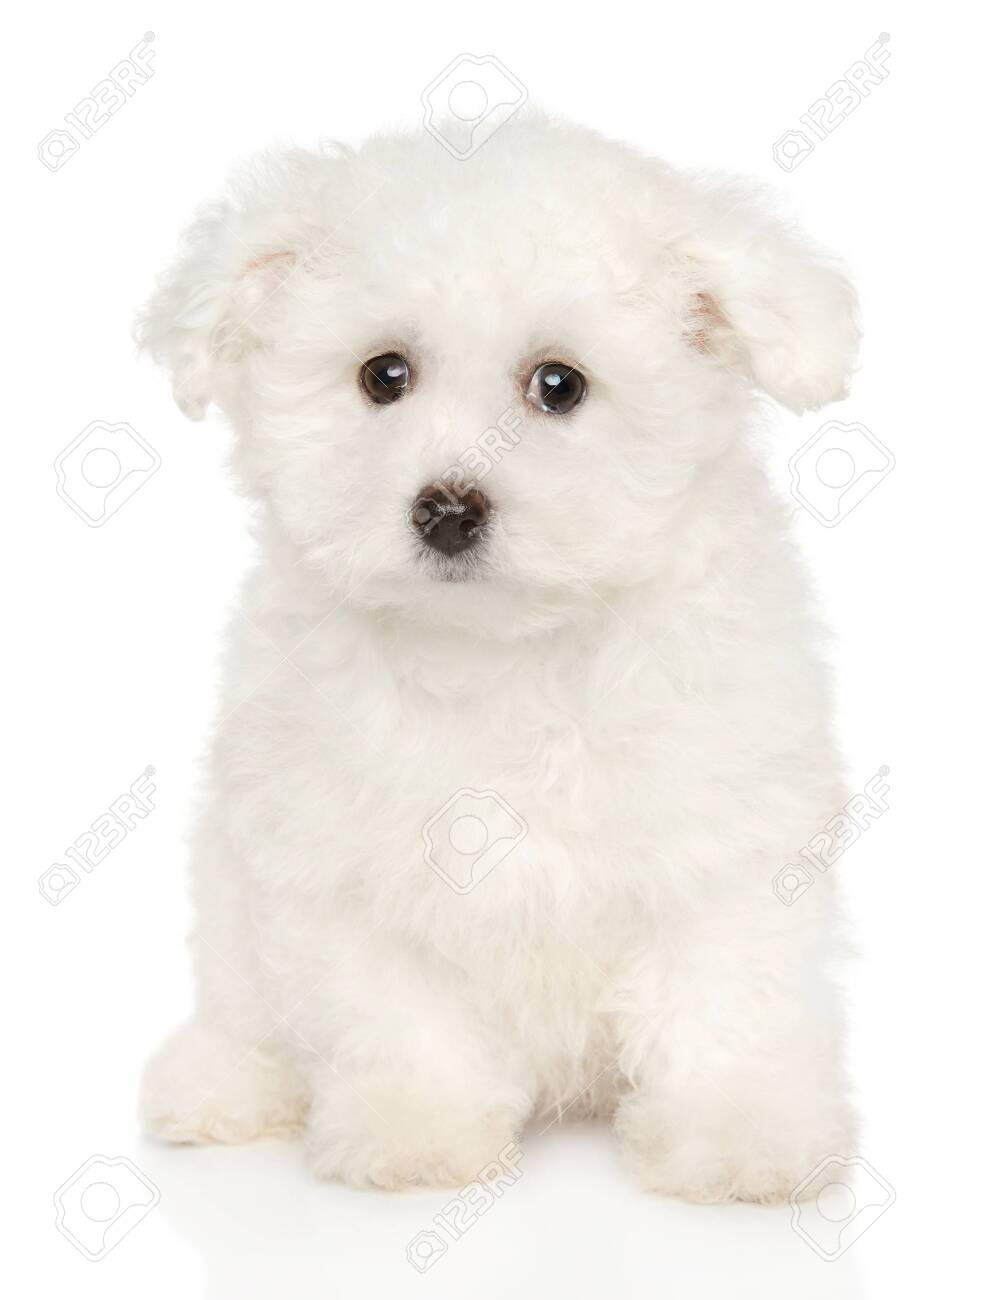 Cute Bichon Frise Puppy Sits On White Background Baby Animal Stock Photo Picture And Royalty Free Image Image 119876534